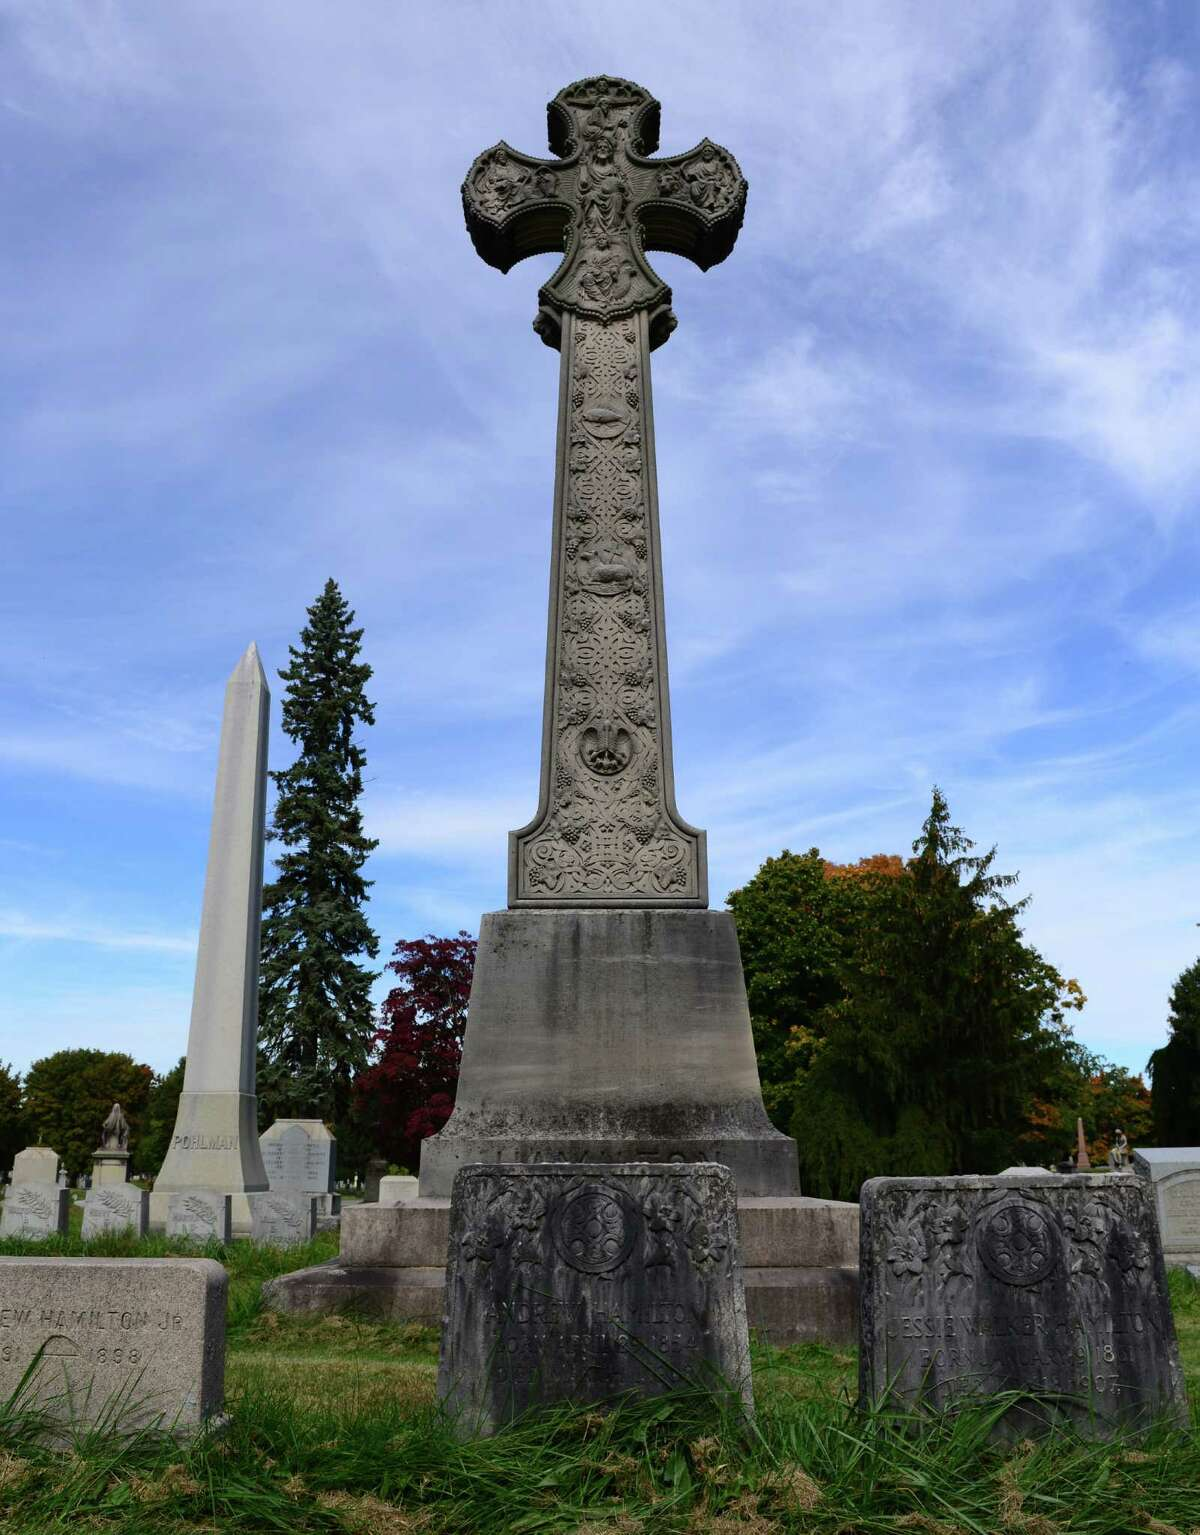 This immense and intricately carved stone monument is the centerpiece of the Hamilton family plot.